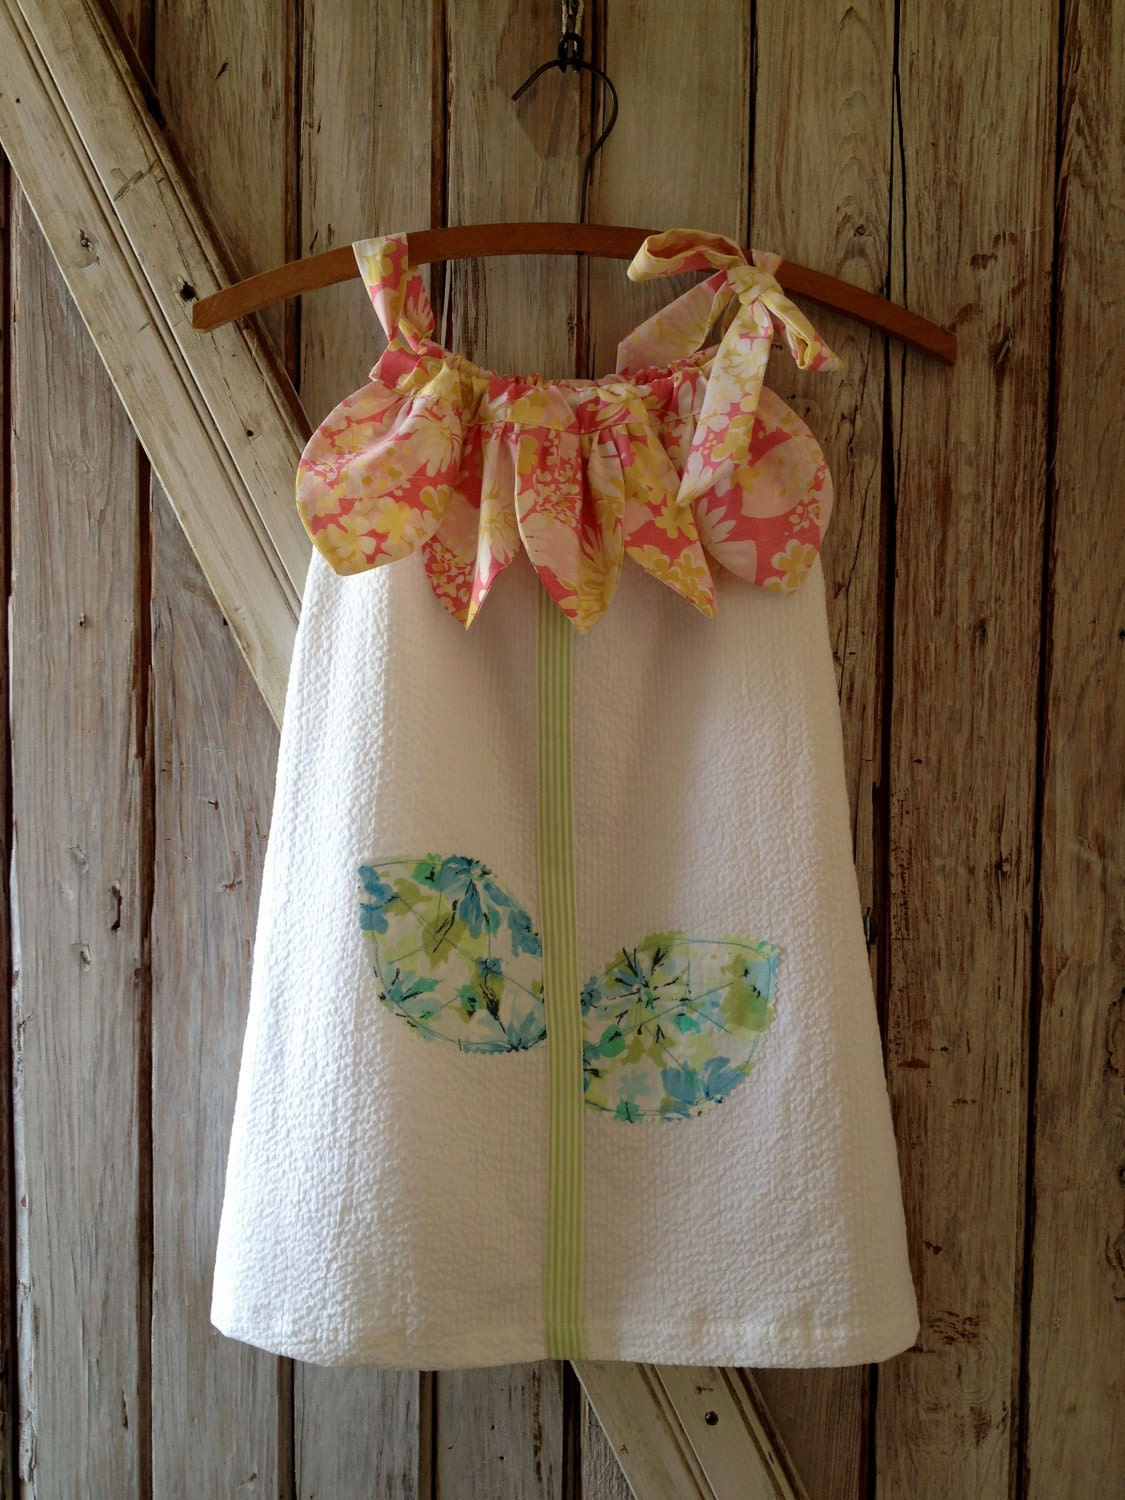 Sunny Flower Pillowcase Dress Pattern Tutorial Girl S